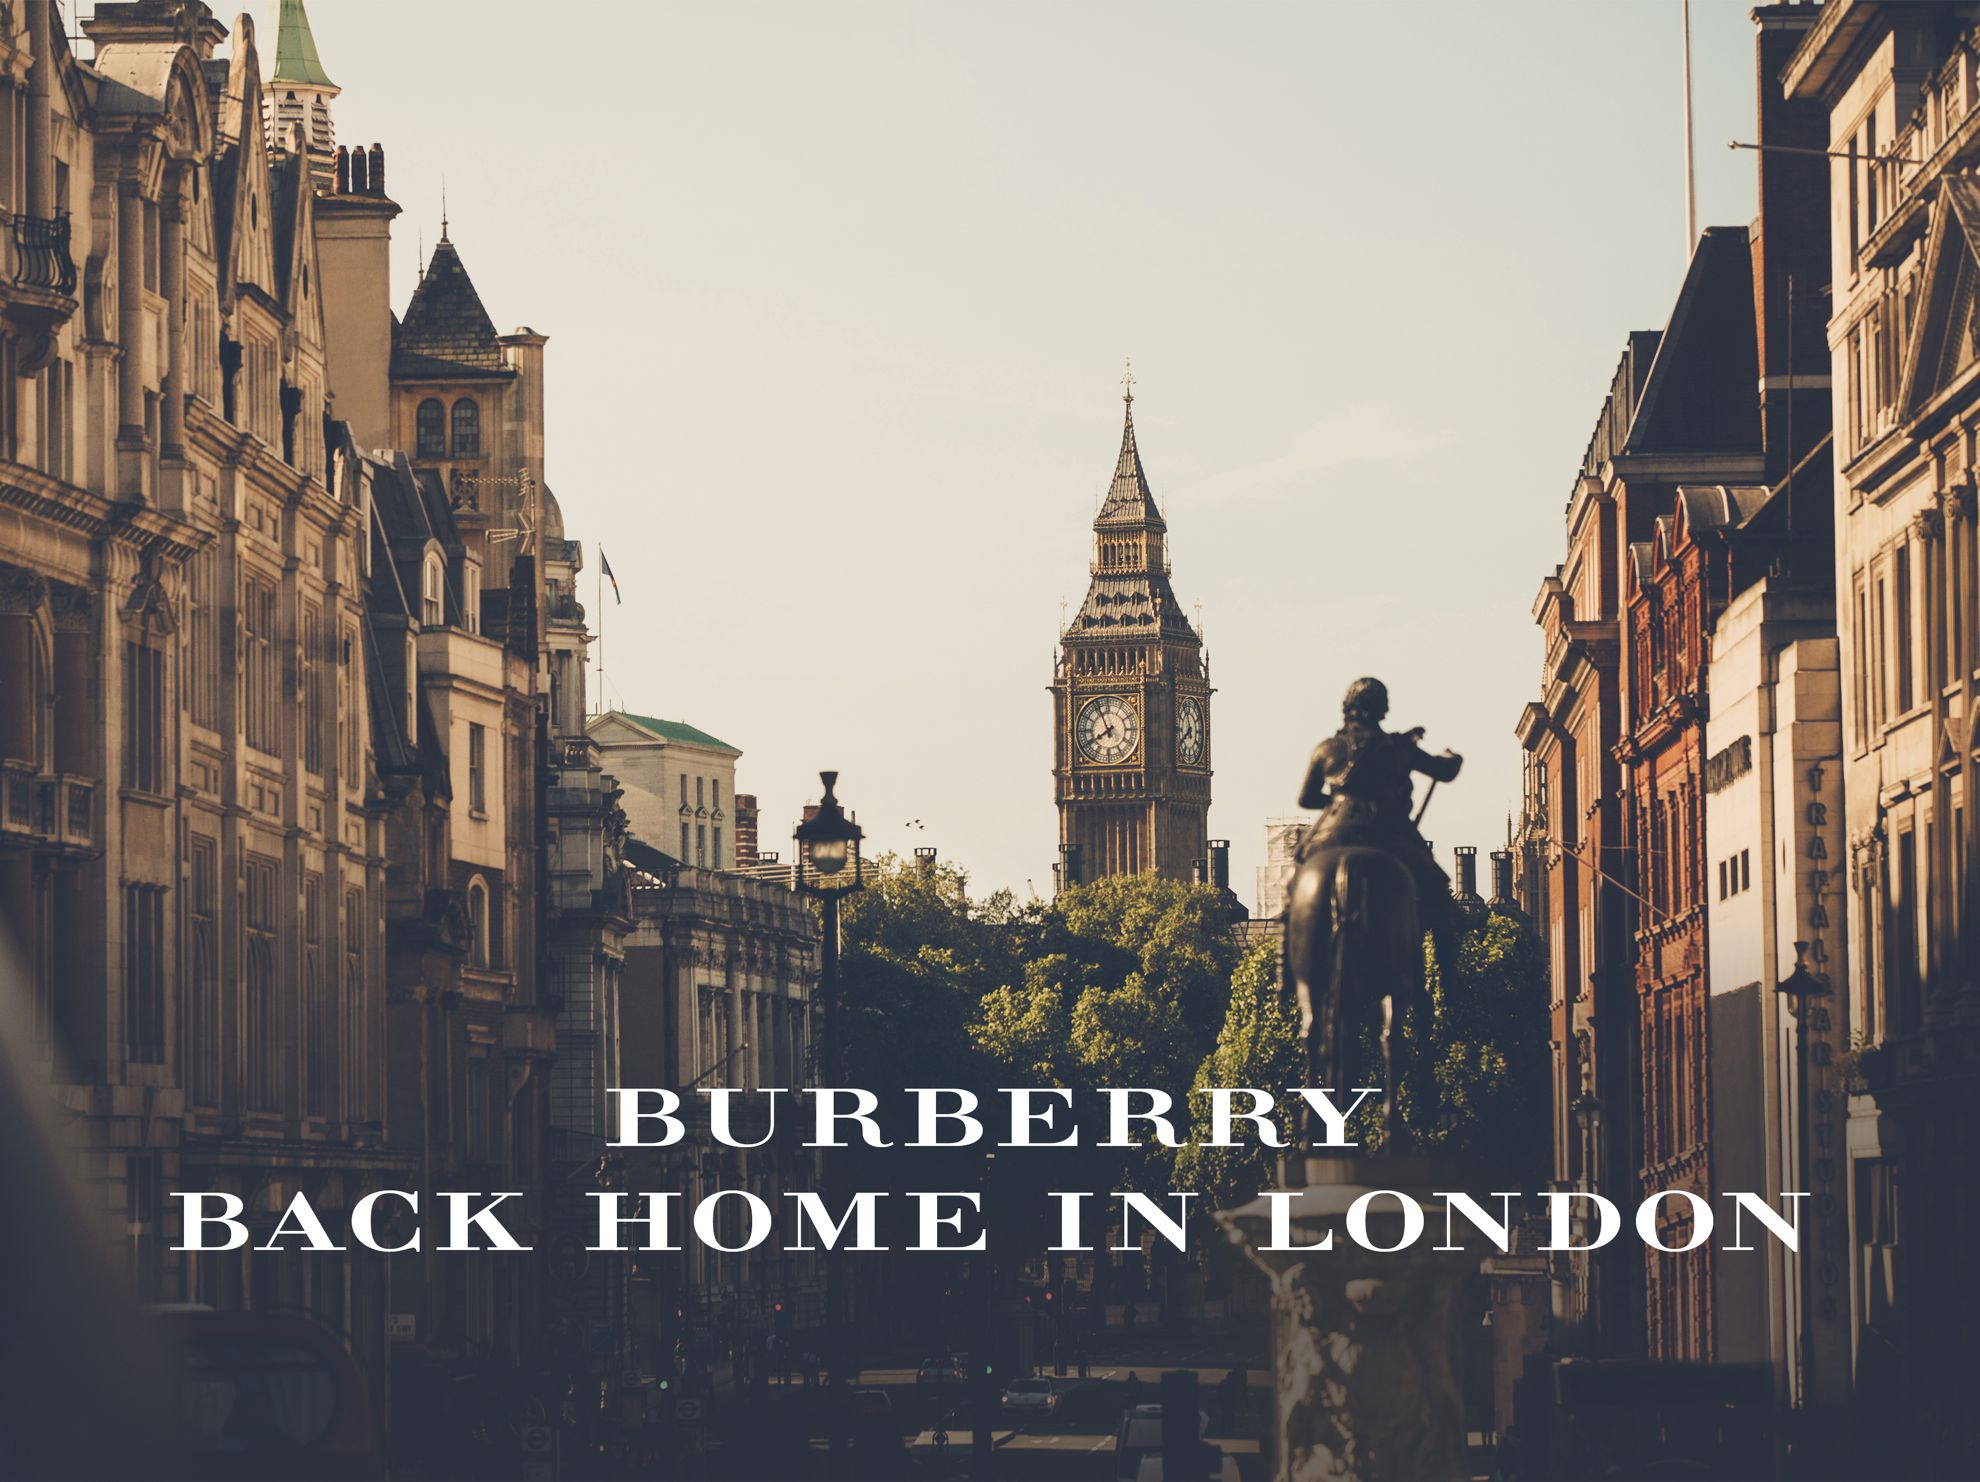 Burberry back home in London